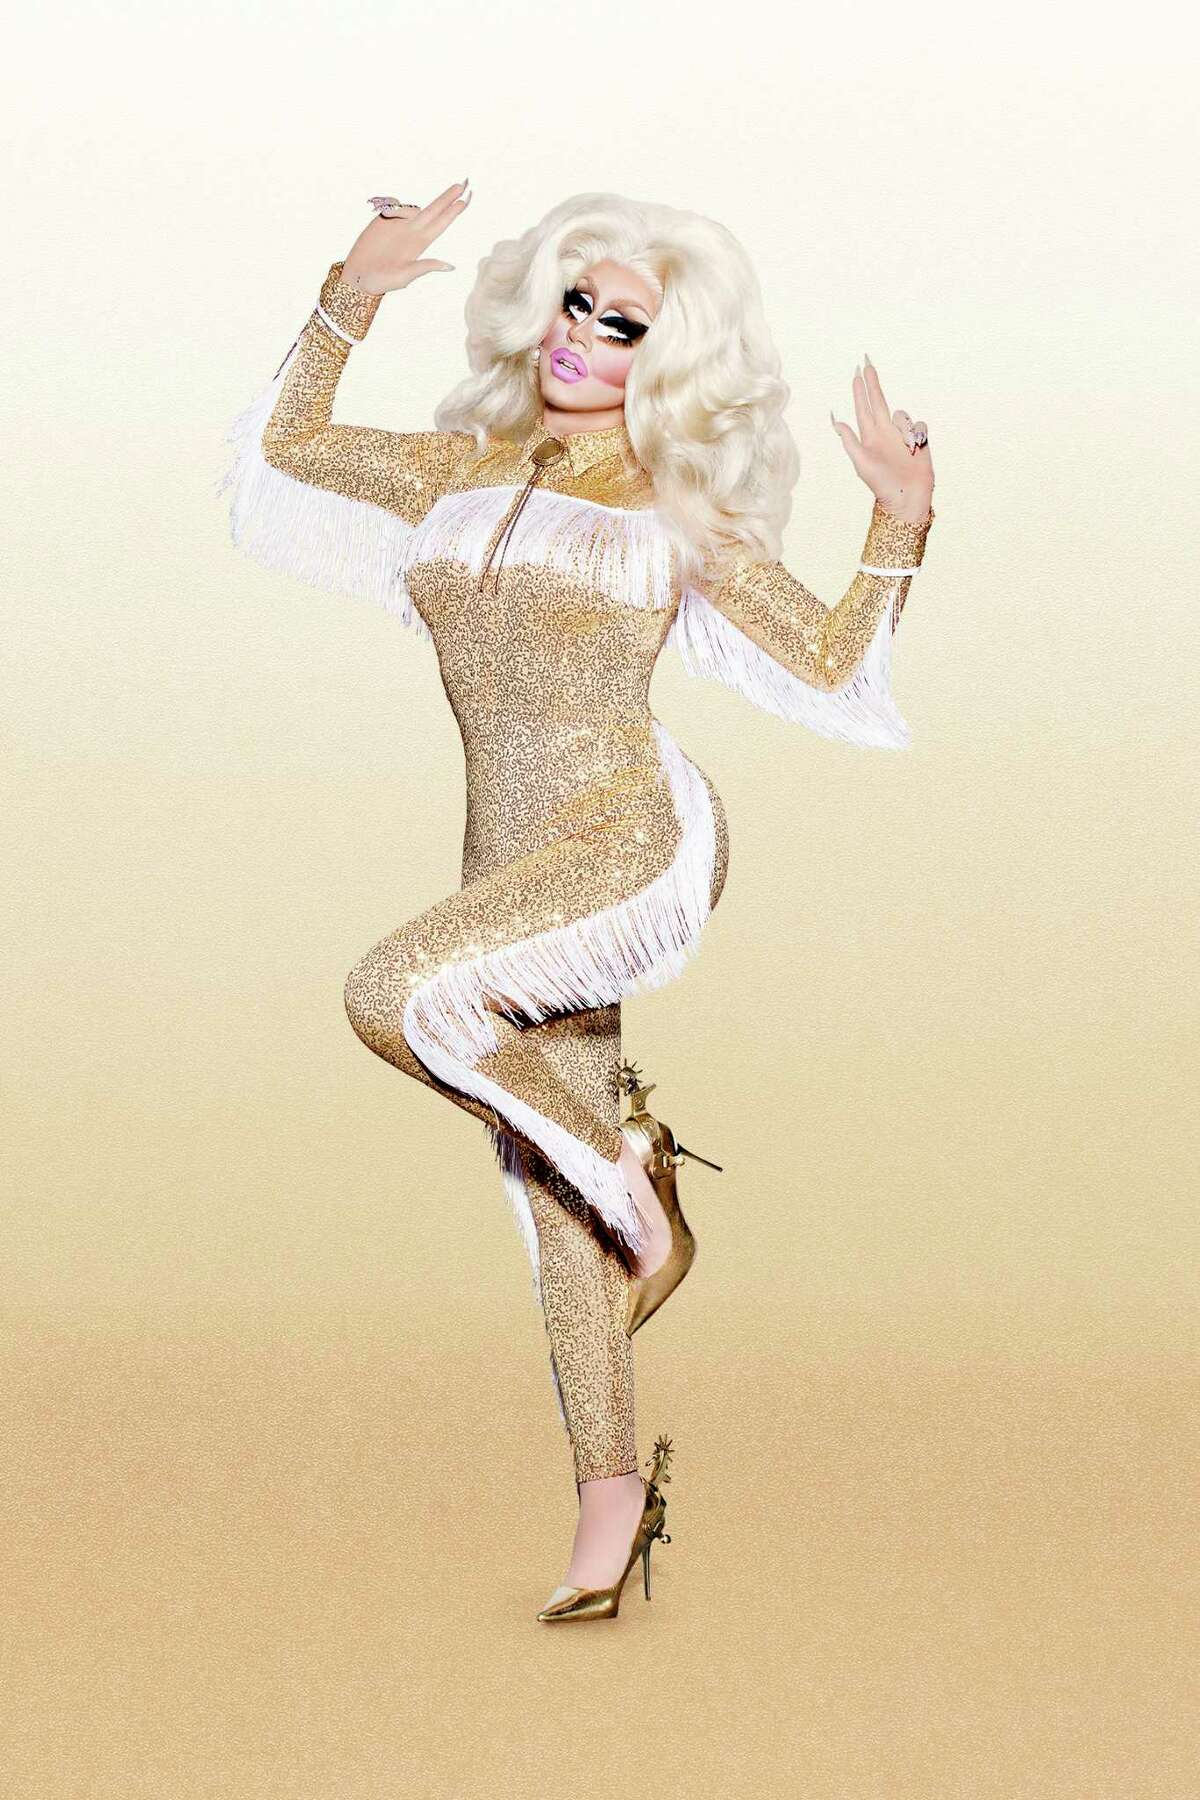 Trixie Mattel Season 7, 11th and 6th place (after returning) All Stars winner